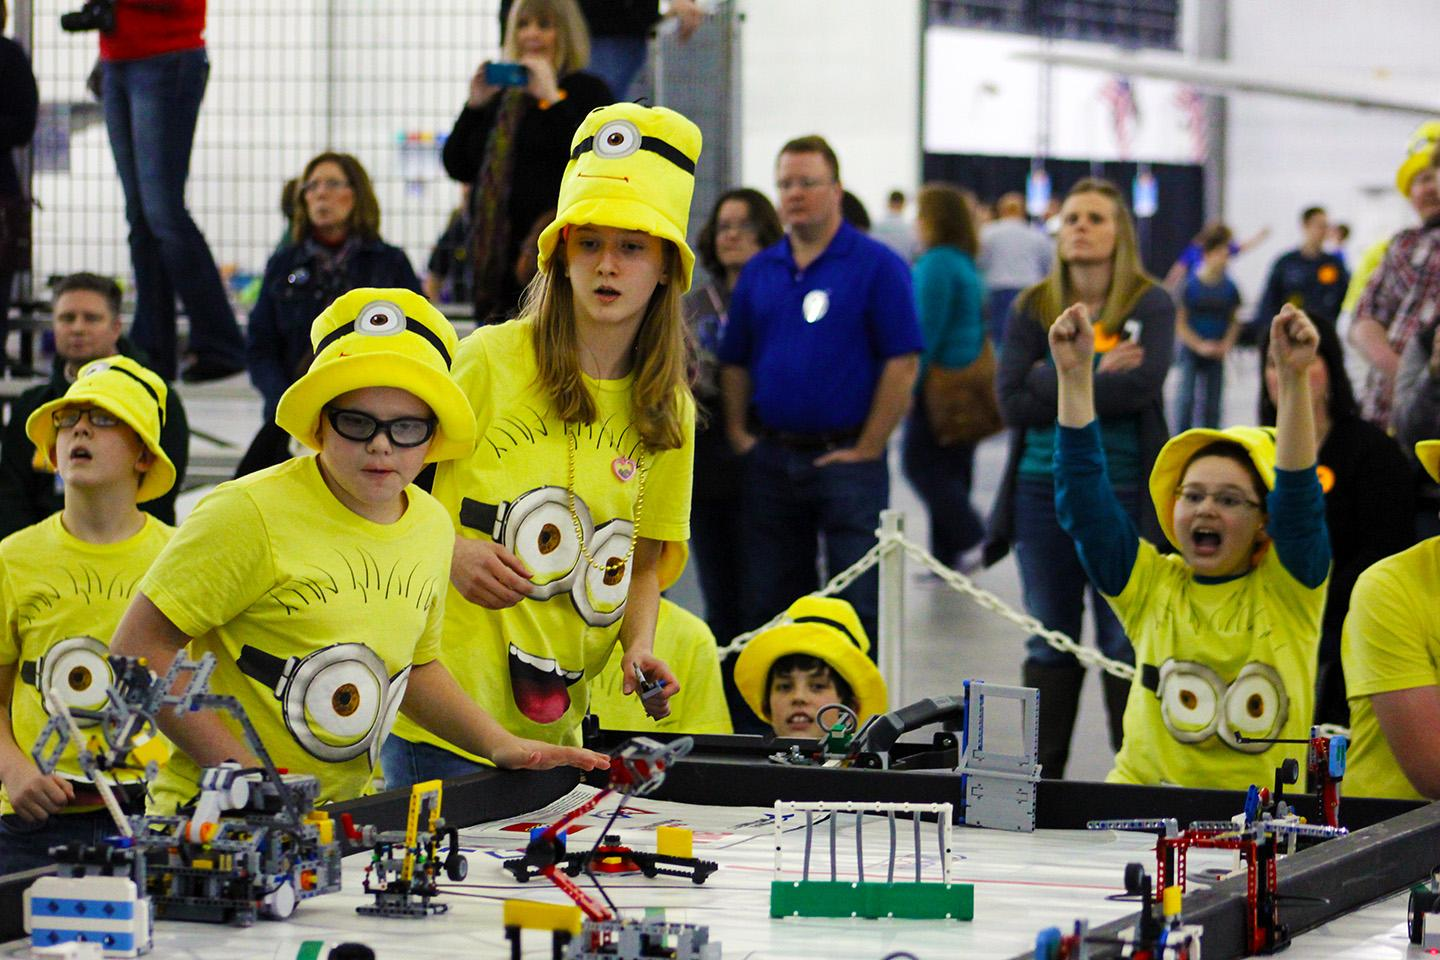 Nebraska FIRST LEGO League team playing robot games